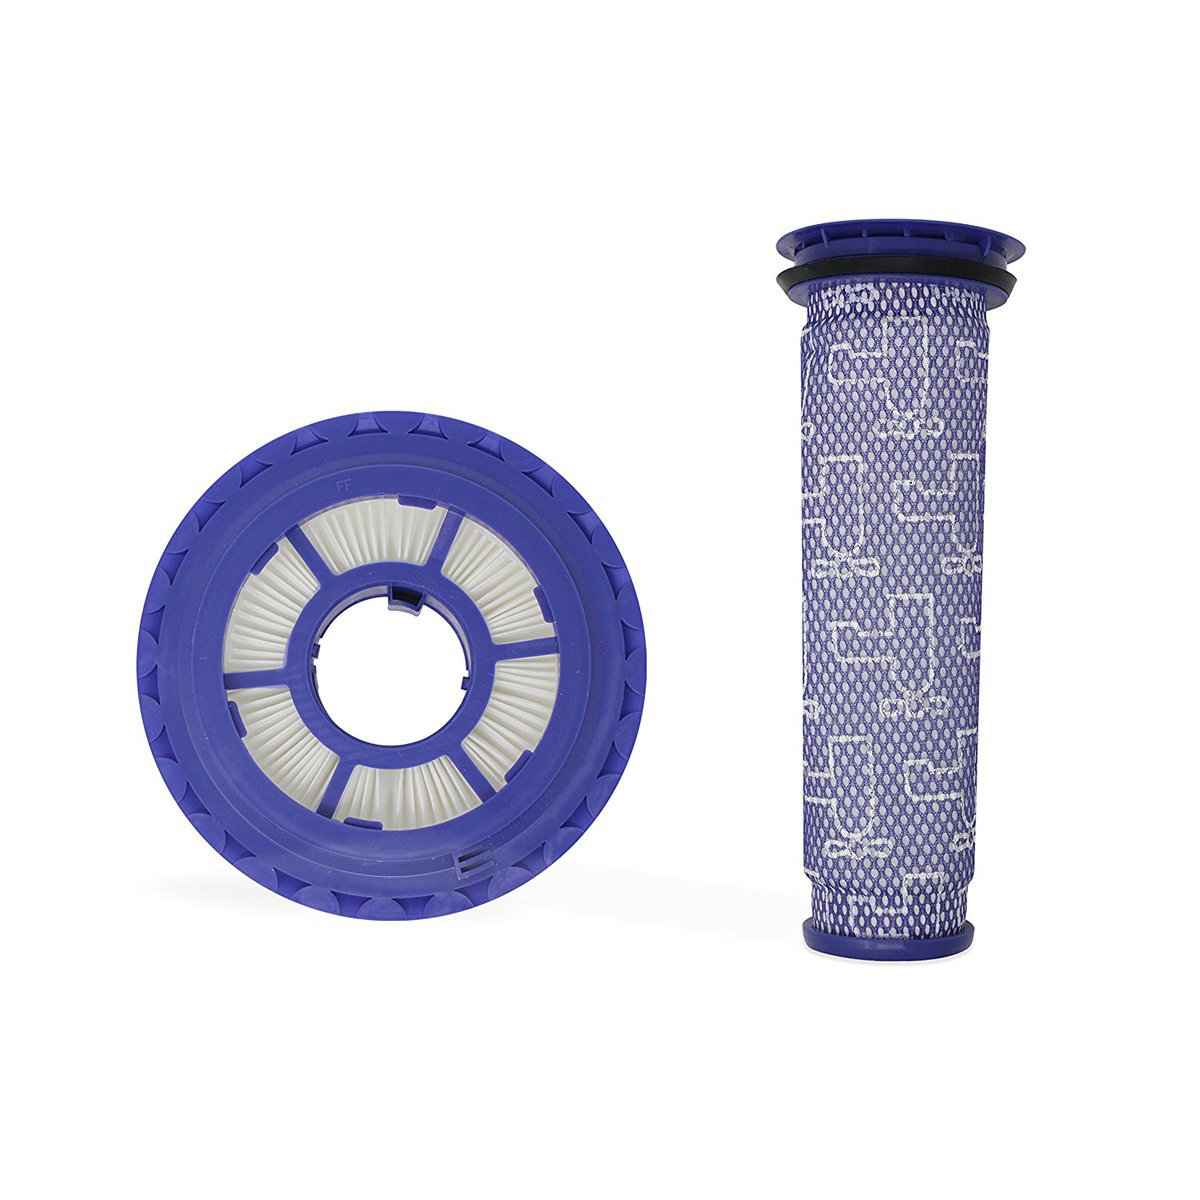 [Washable] Pre Filter & HEPA Post Filter for Dyson vacuums, Replacement Filter for Dyson DC41, DC65, DC66, Multi Floor and Animal Vacuum Cleaner Filter, Replaces Part # 920769-01 & 920640-01 - Combo P